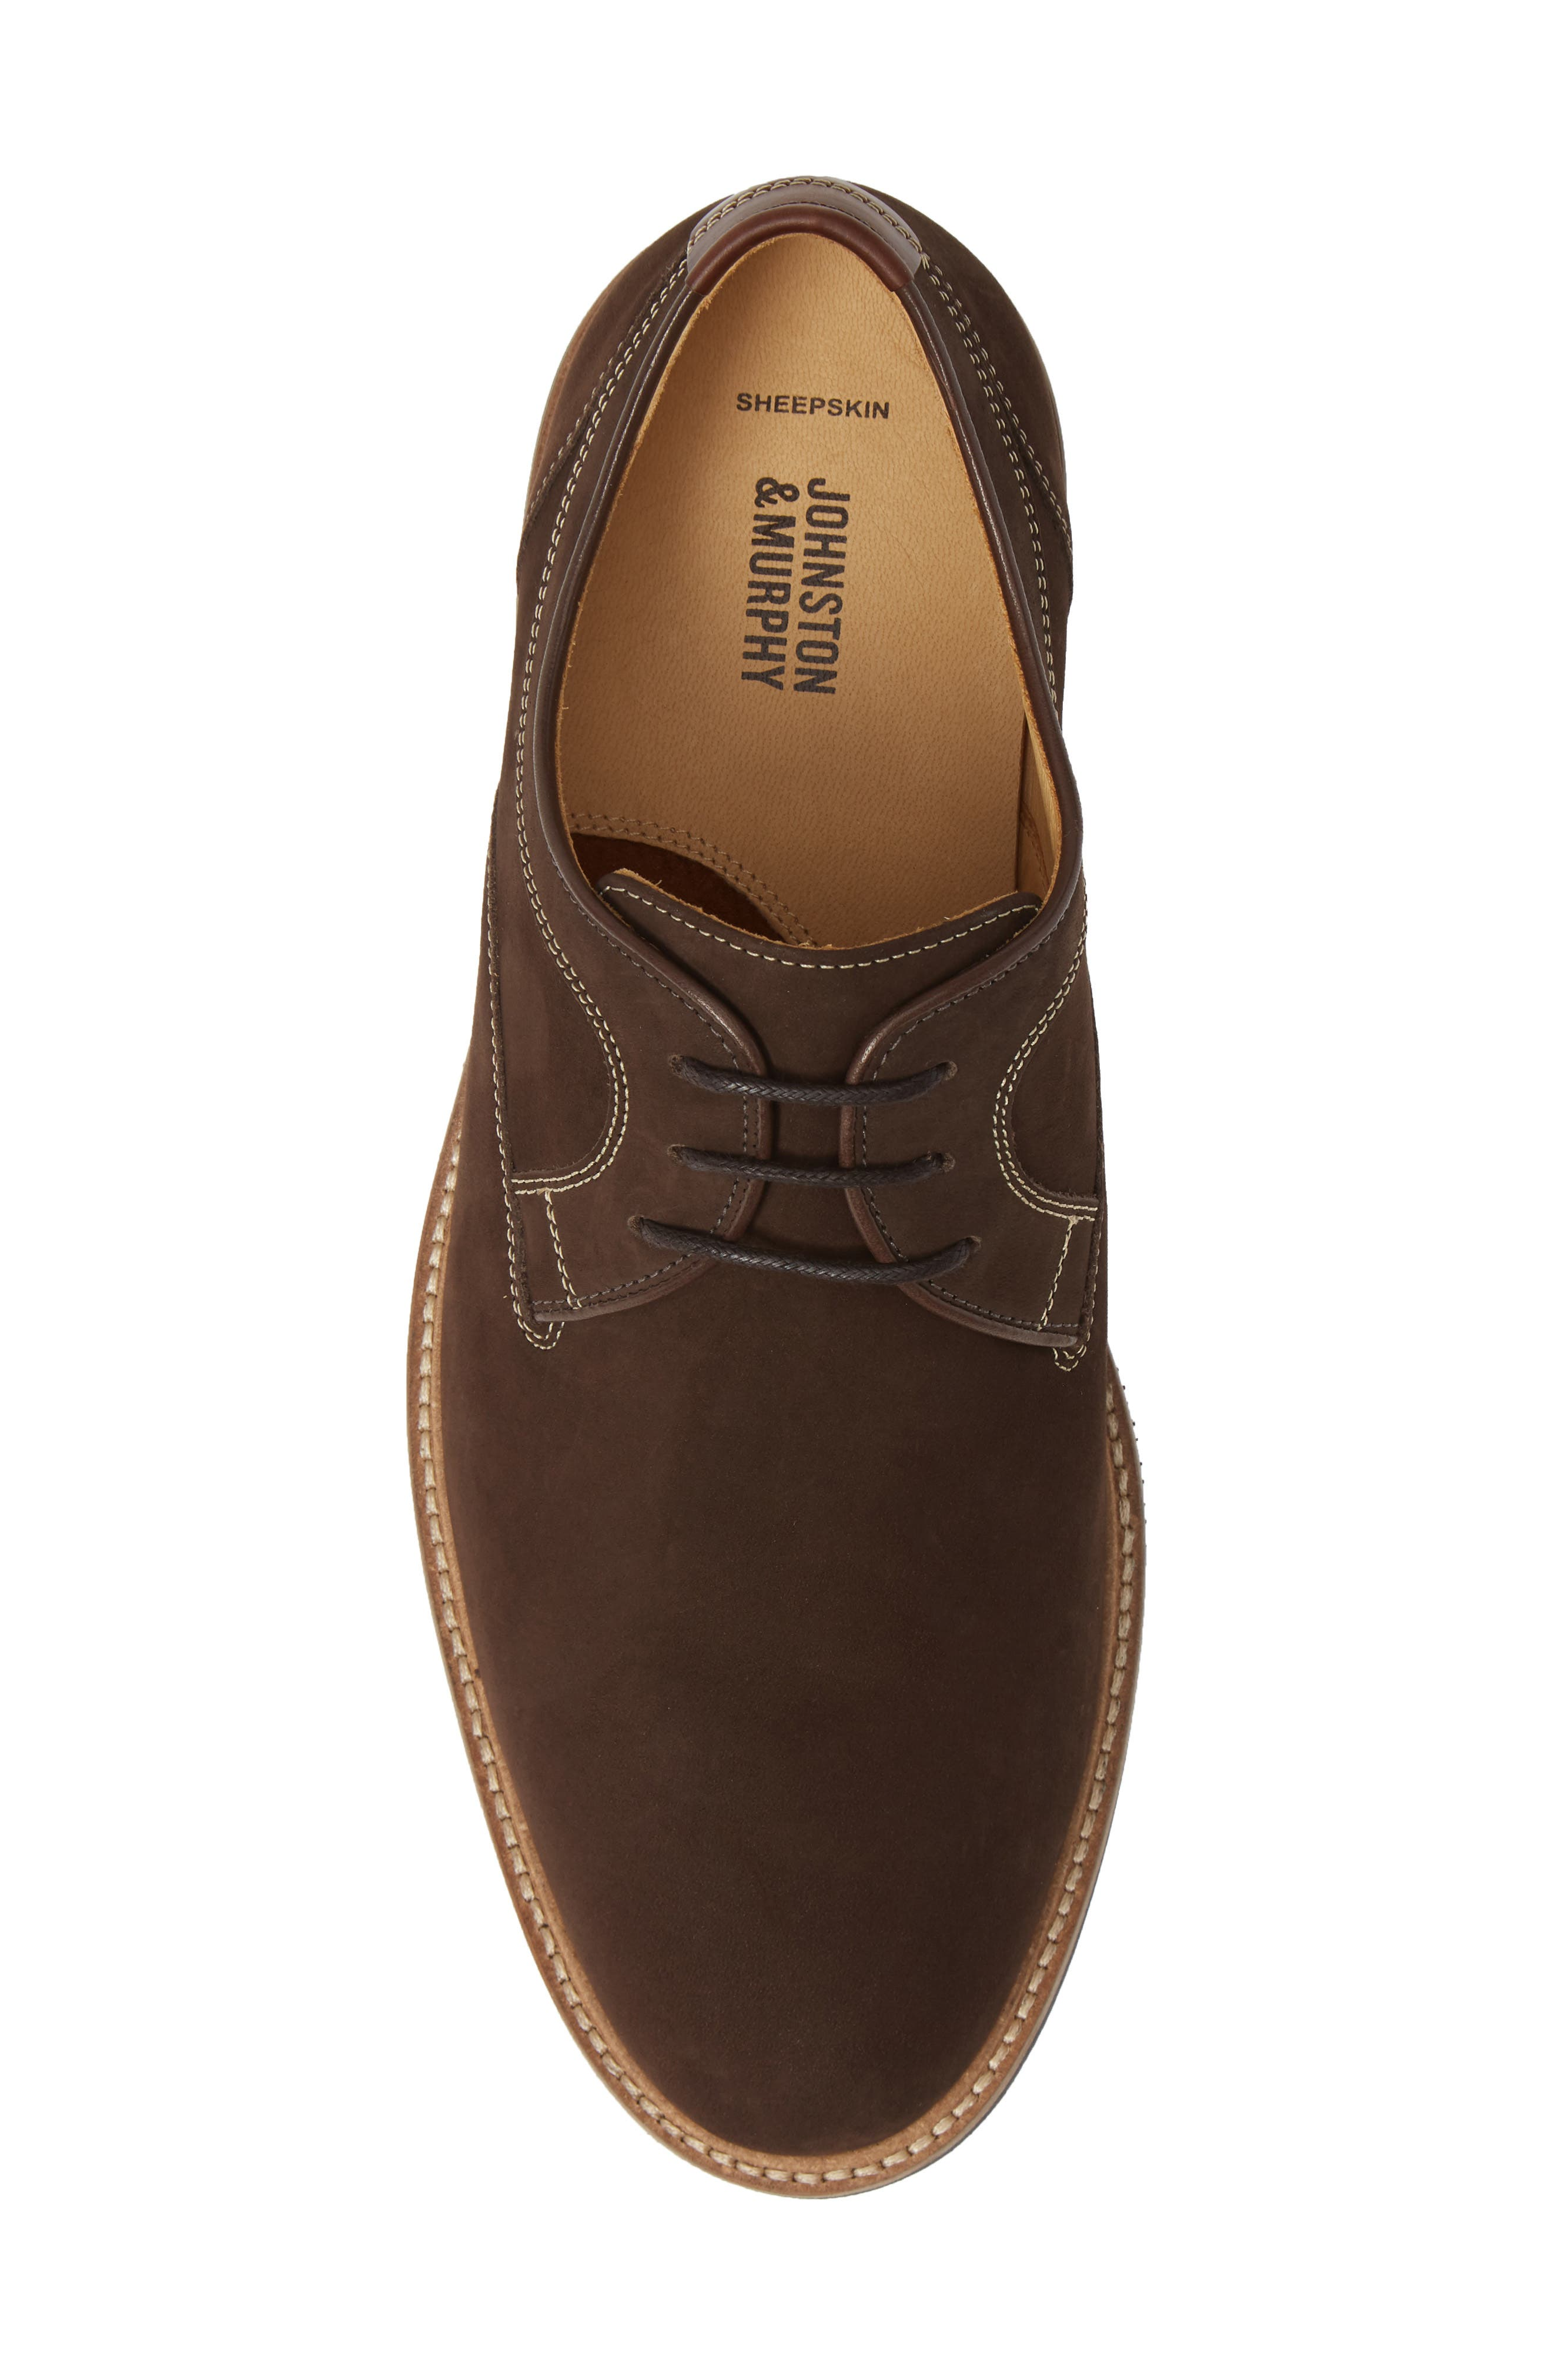 JOHNSTON & MURPHY,                             Barlow Plain Toe Derby,                             Alternate thumbnail 5, color,                             CHOCOLATE NUBUCK